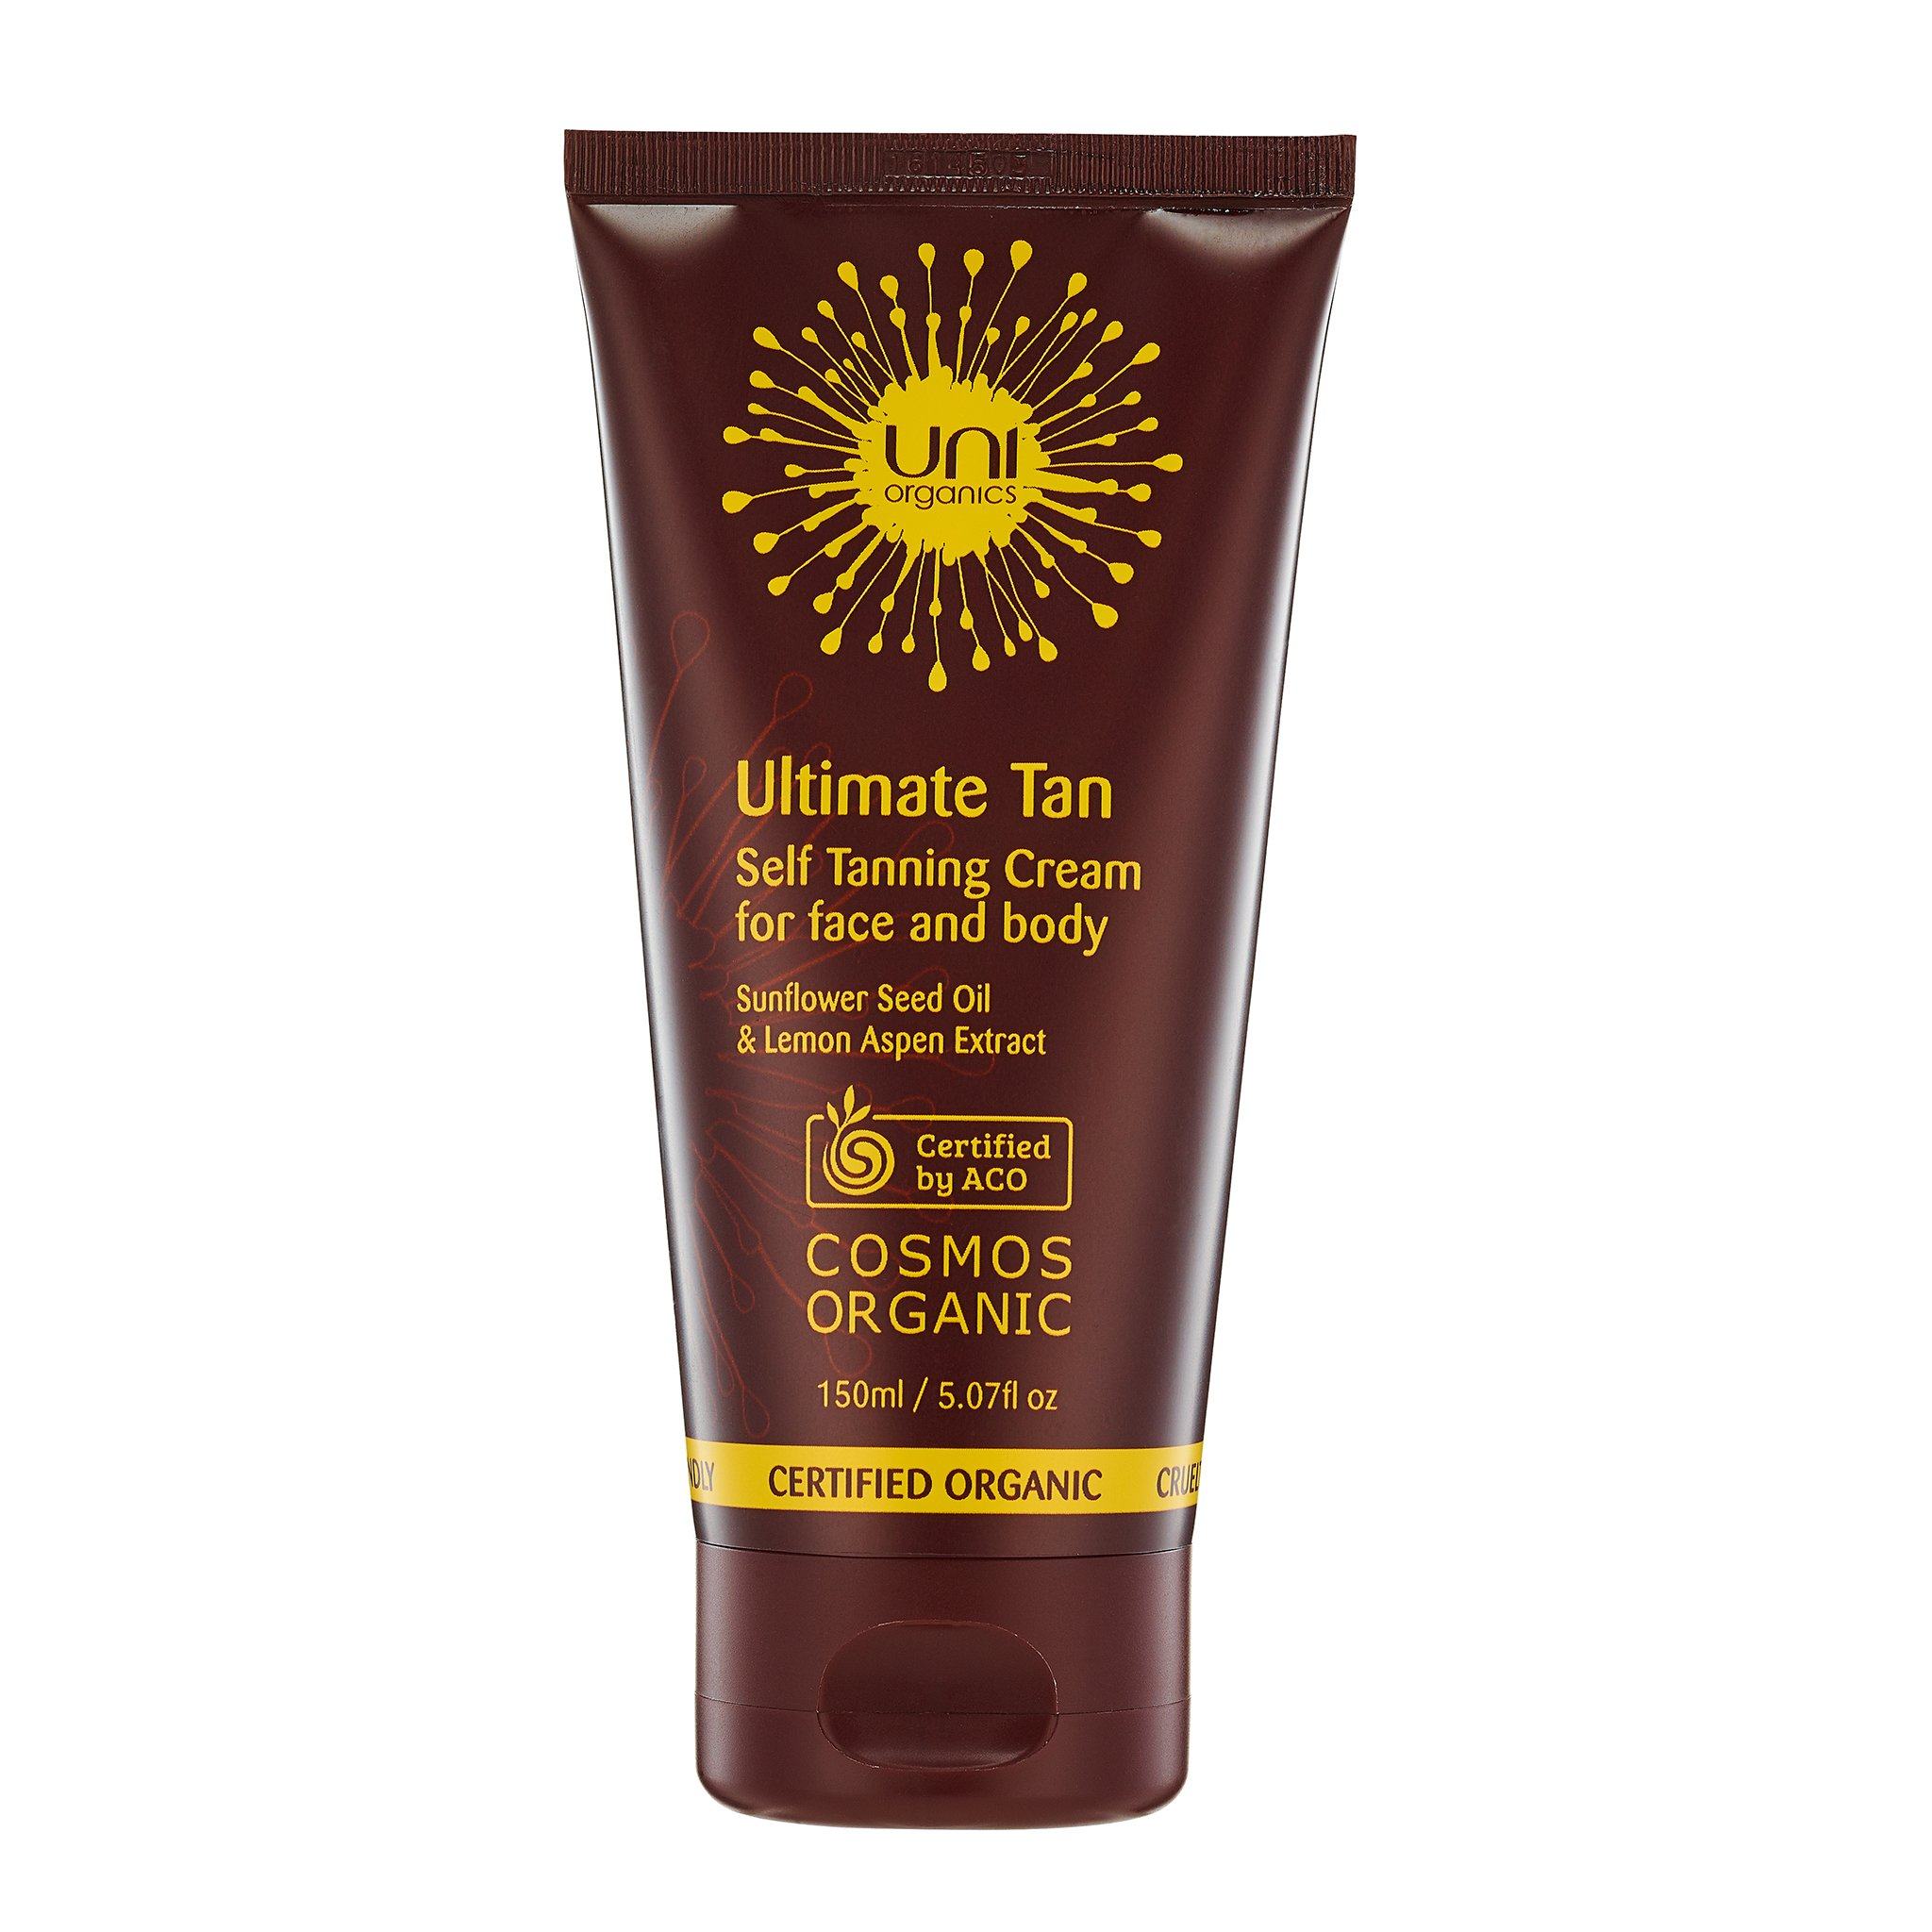 Certified Organic Anti-Aging Self Tanning Lotion For Face & Body - Buildable Self Tan Medium to Dark - Reduces Wrinkles and Fine Line, Deep Hydration with Sunflower Seed Oil by Uni Organics by UNIORGANICS